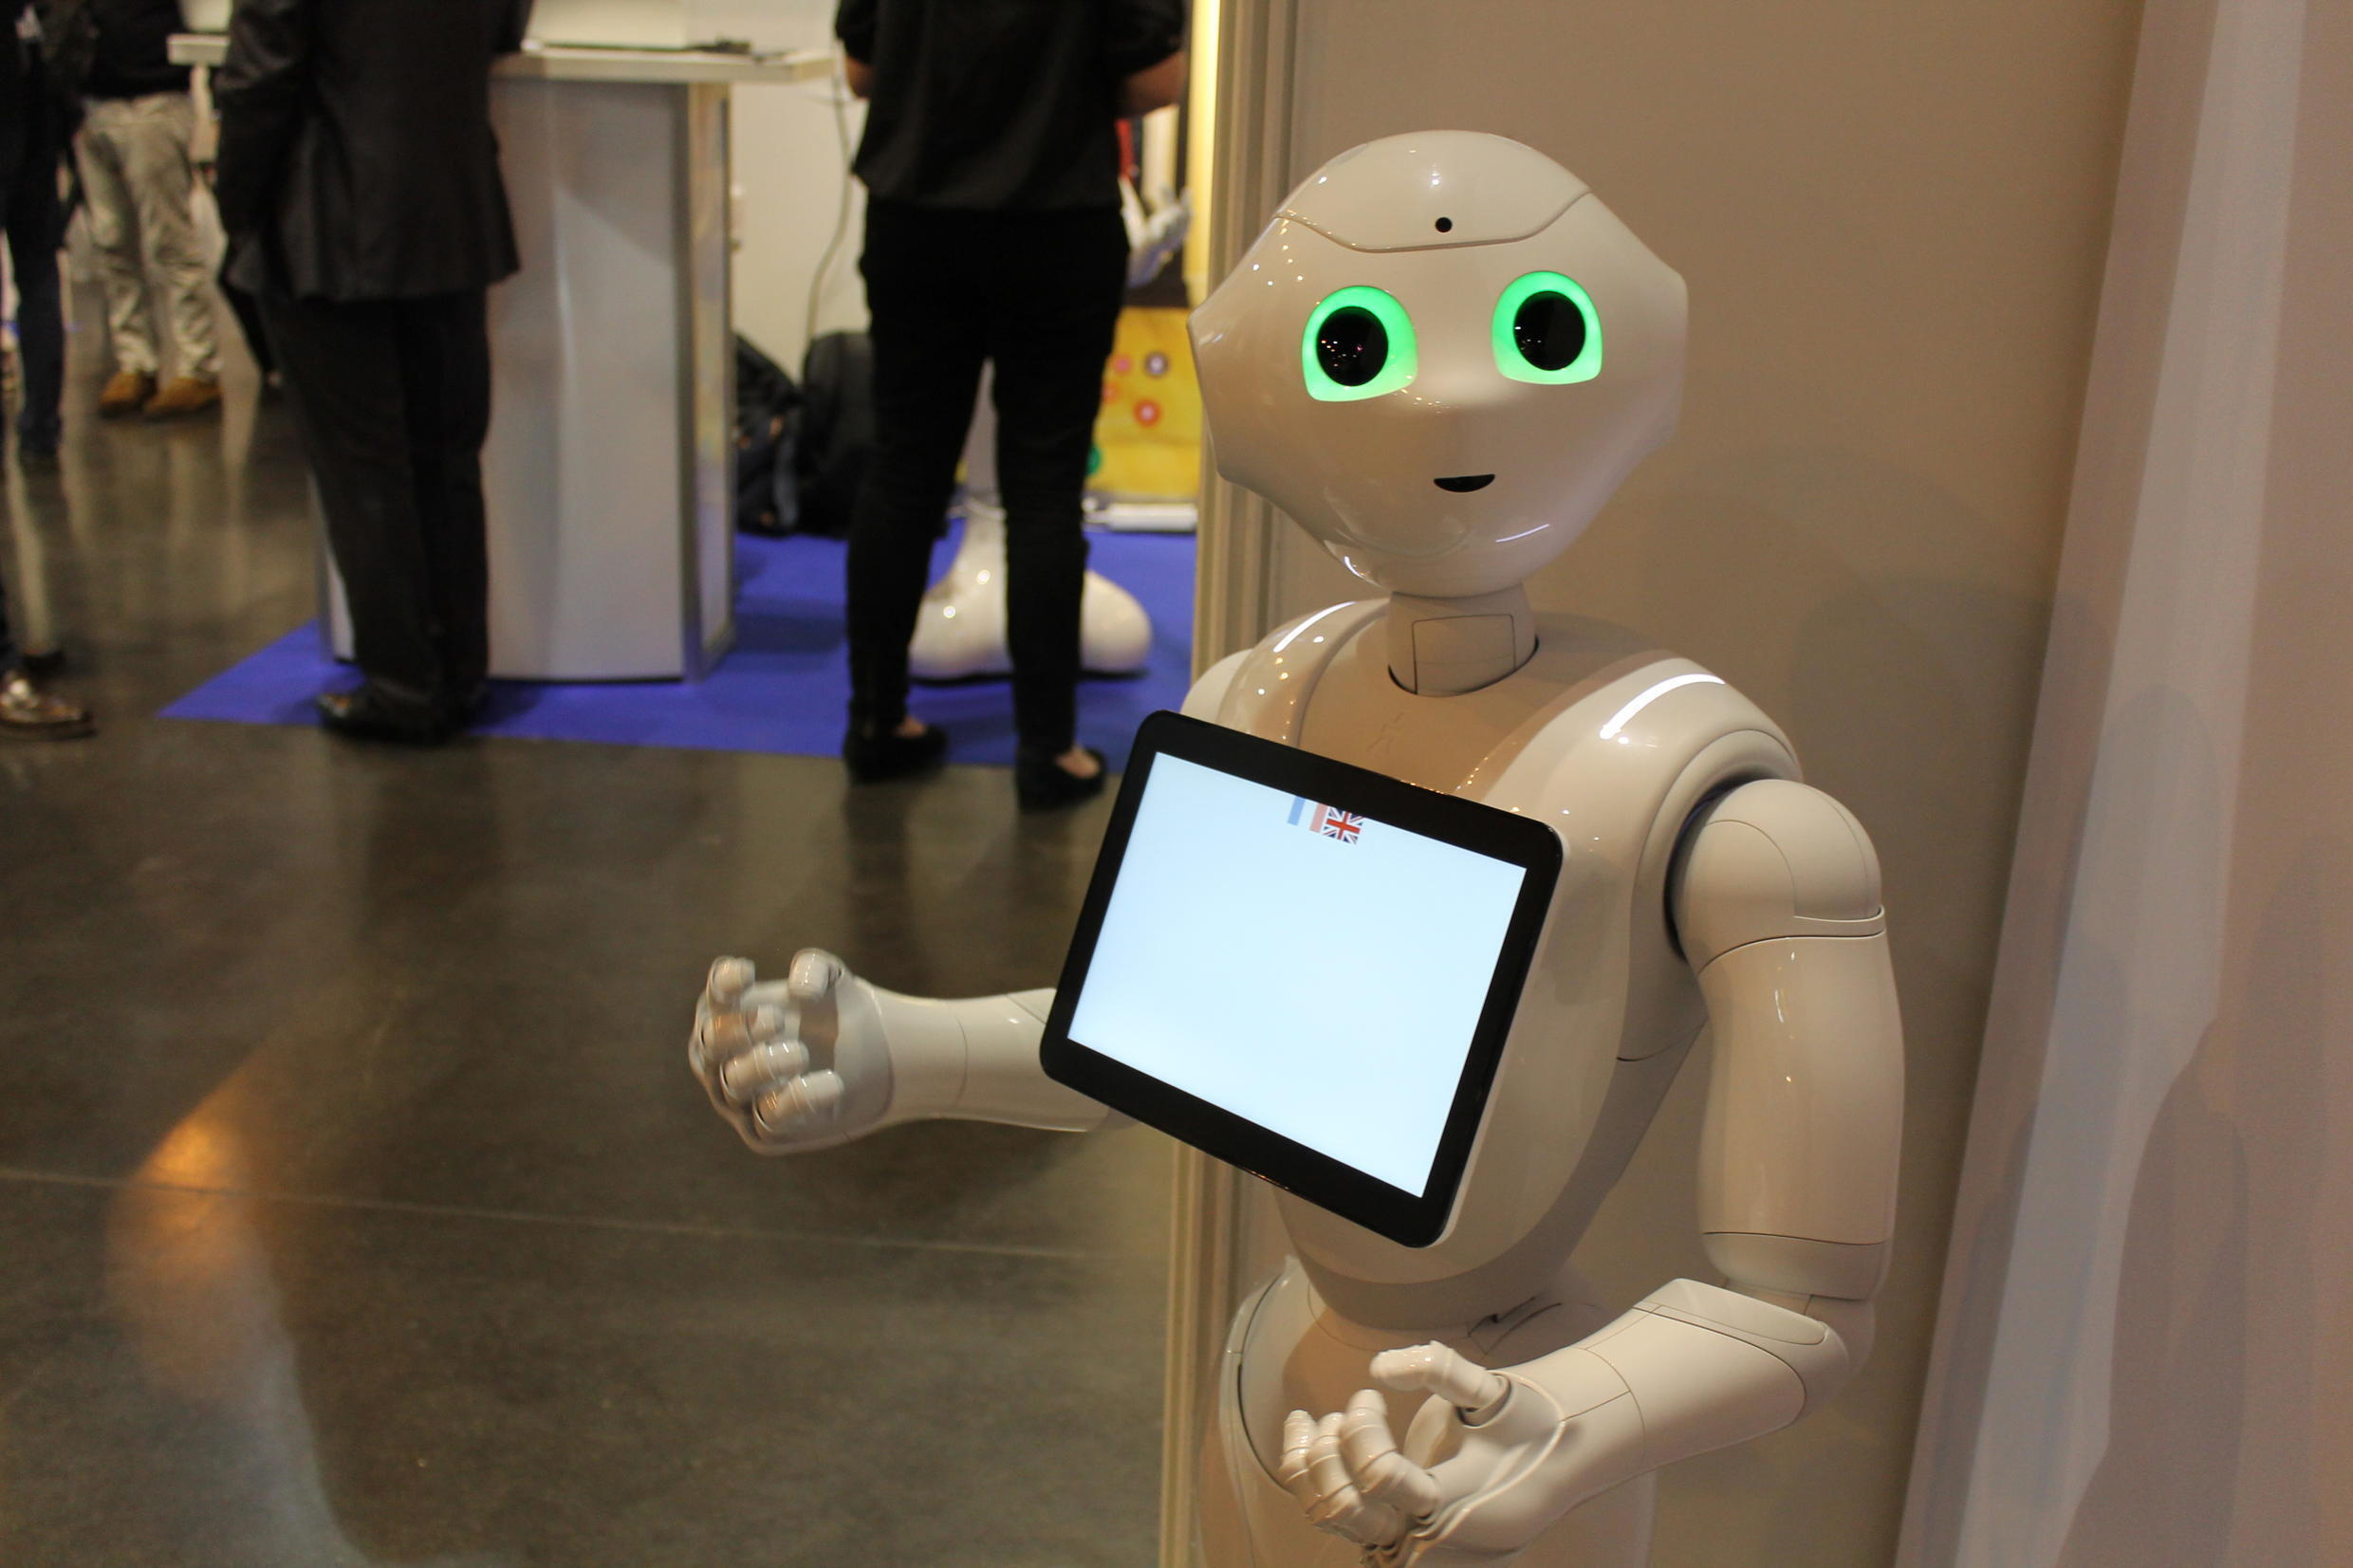 'Pepper' welcomes visitors to VivaTech 2017.